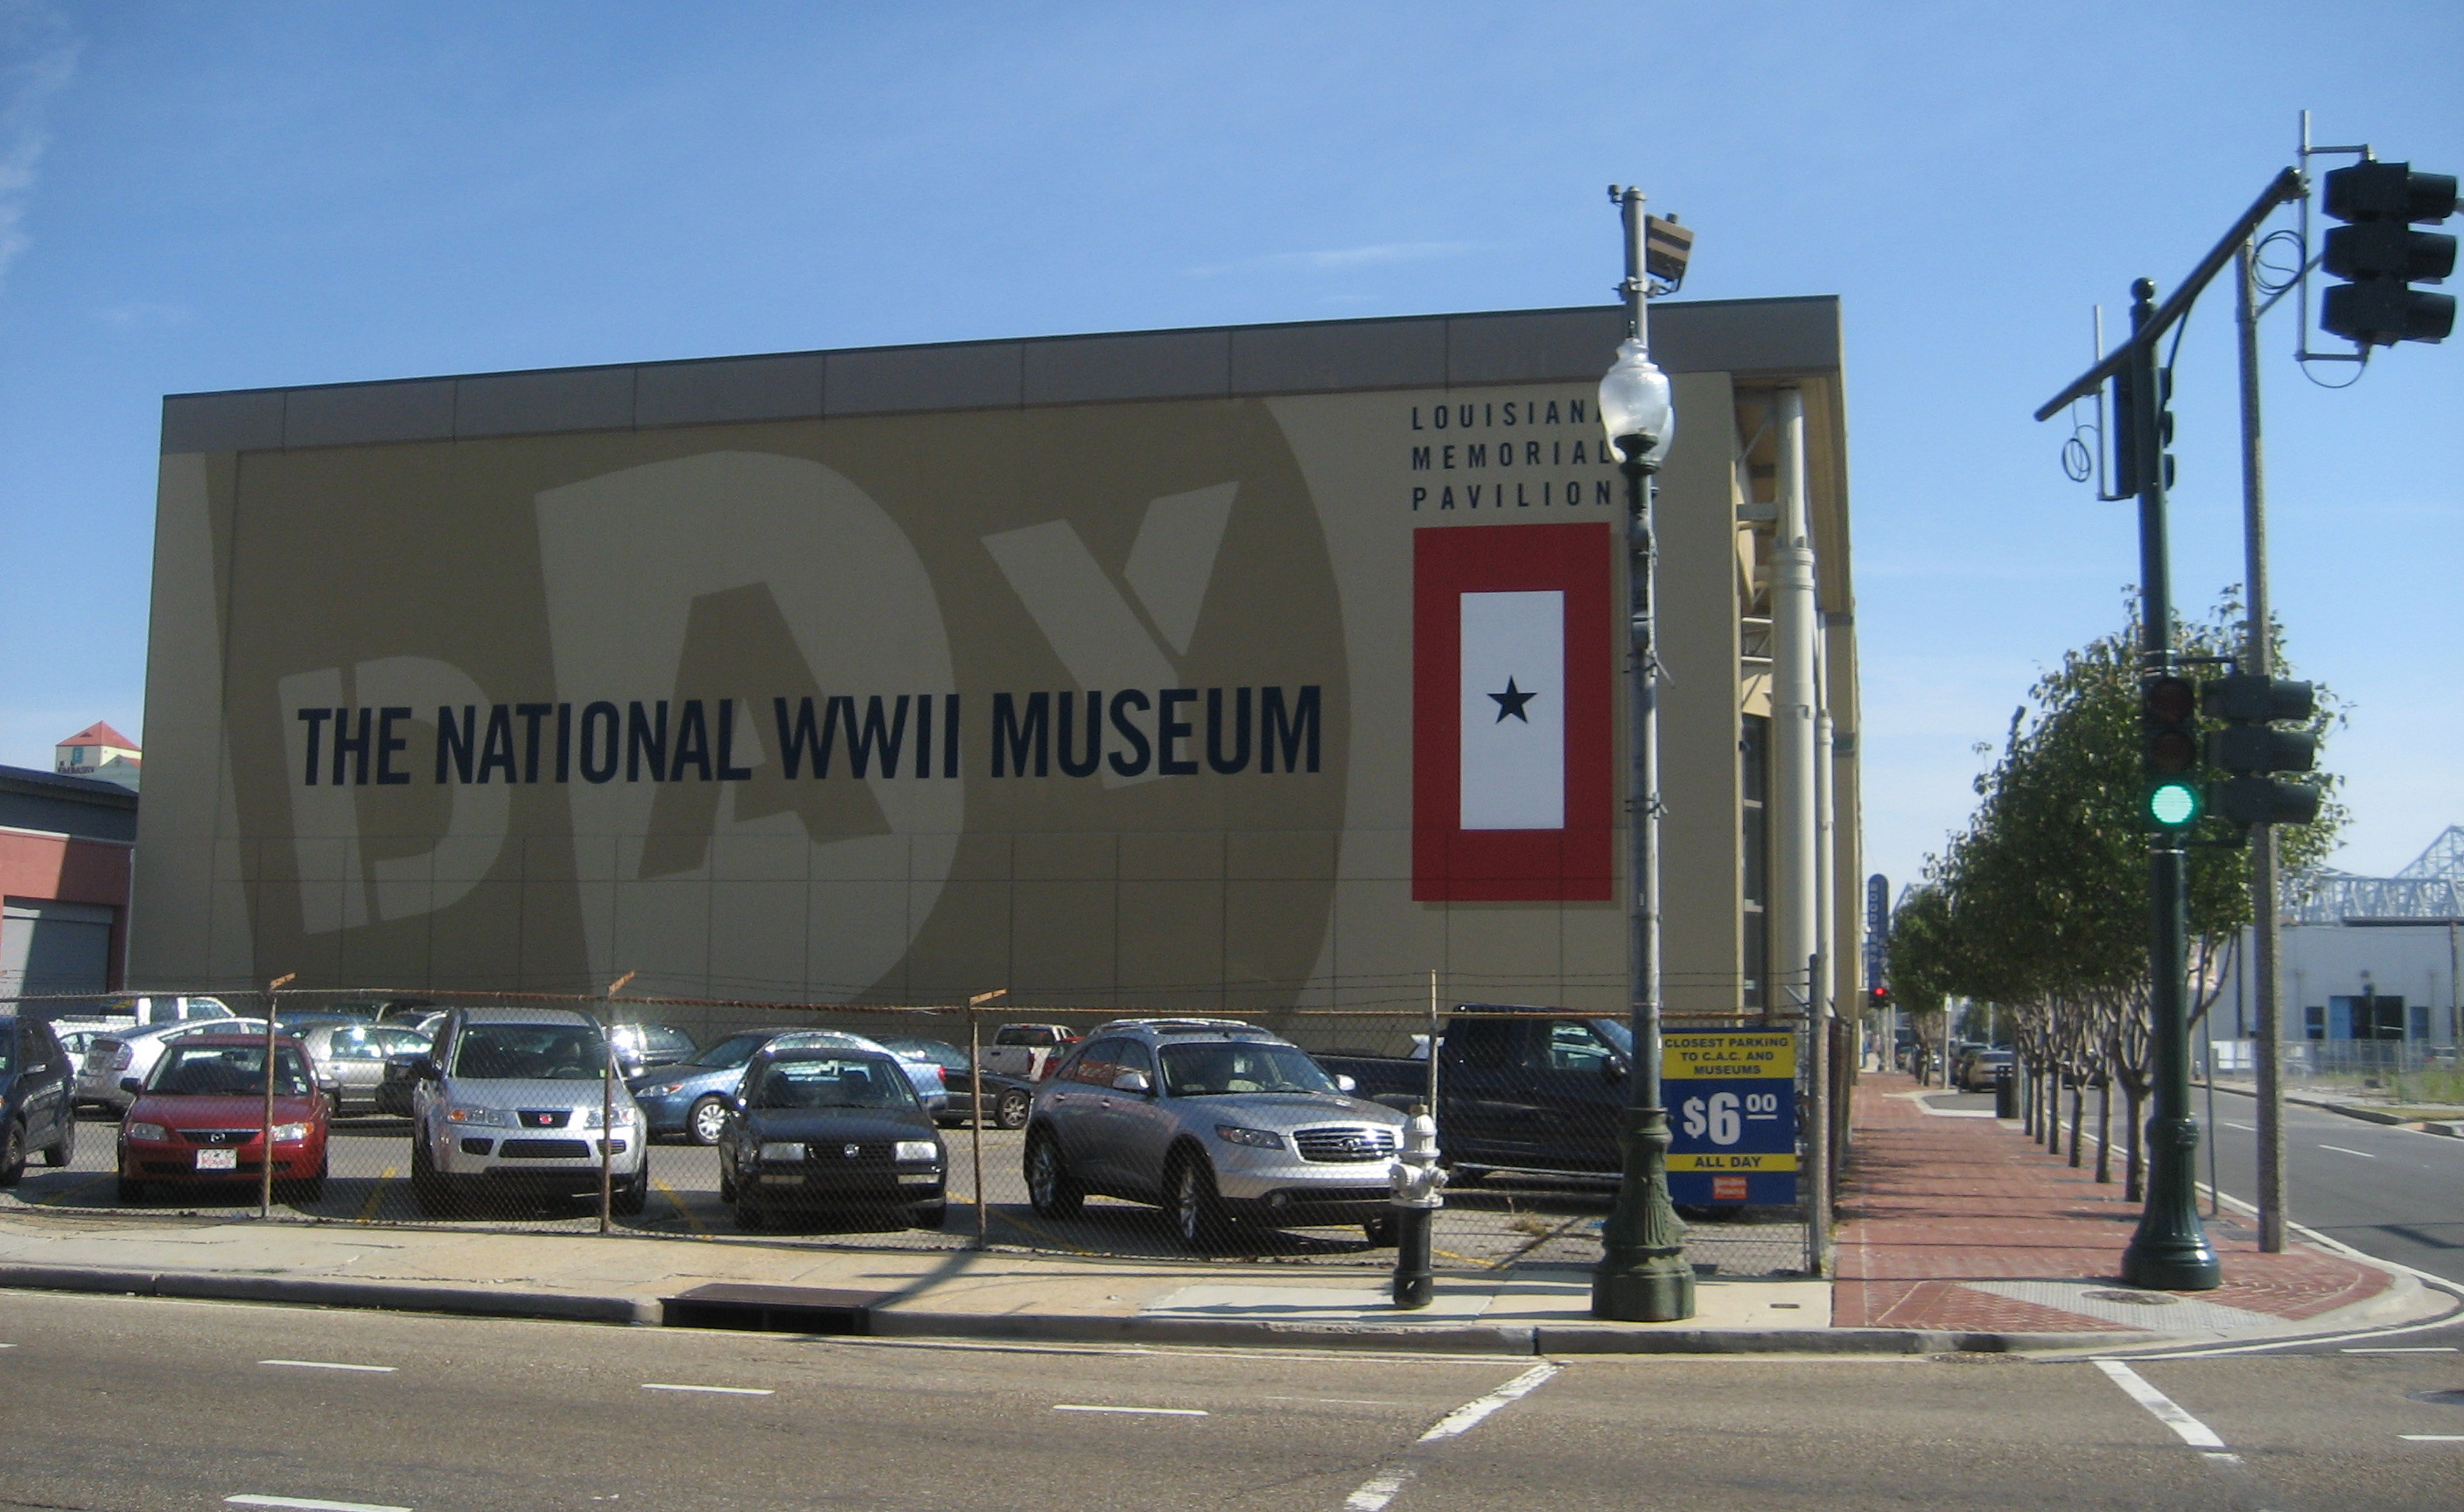 National World War II Museum – Wikipedia